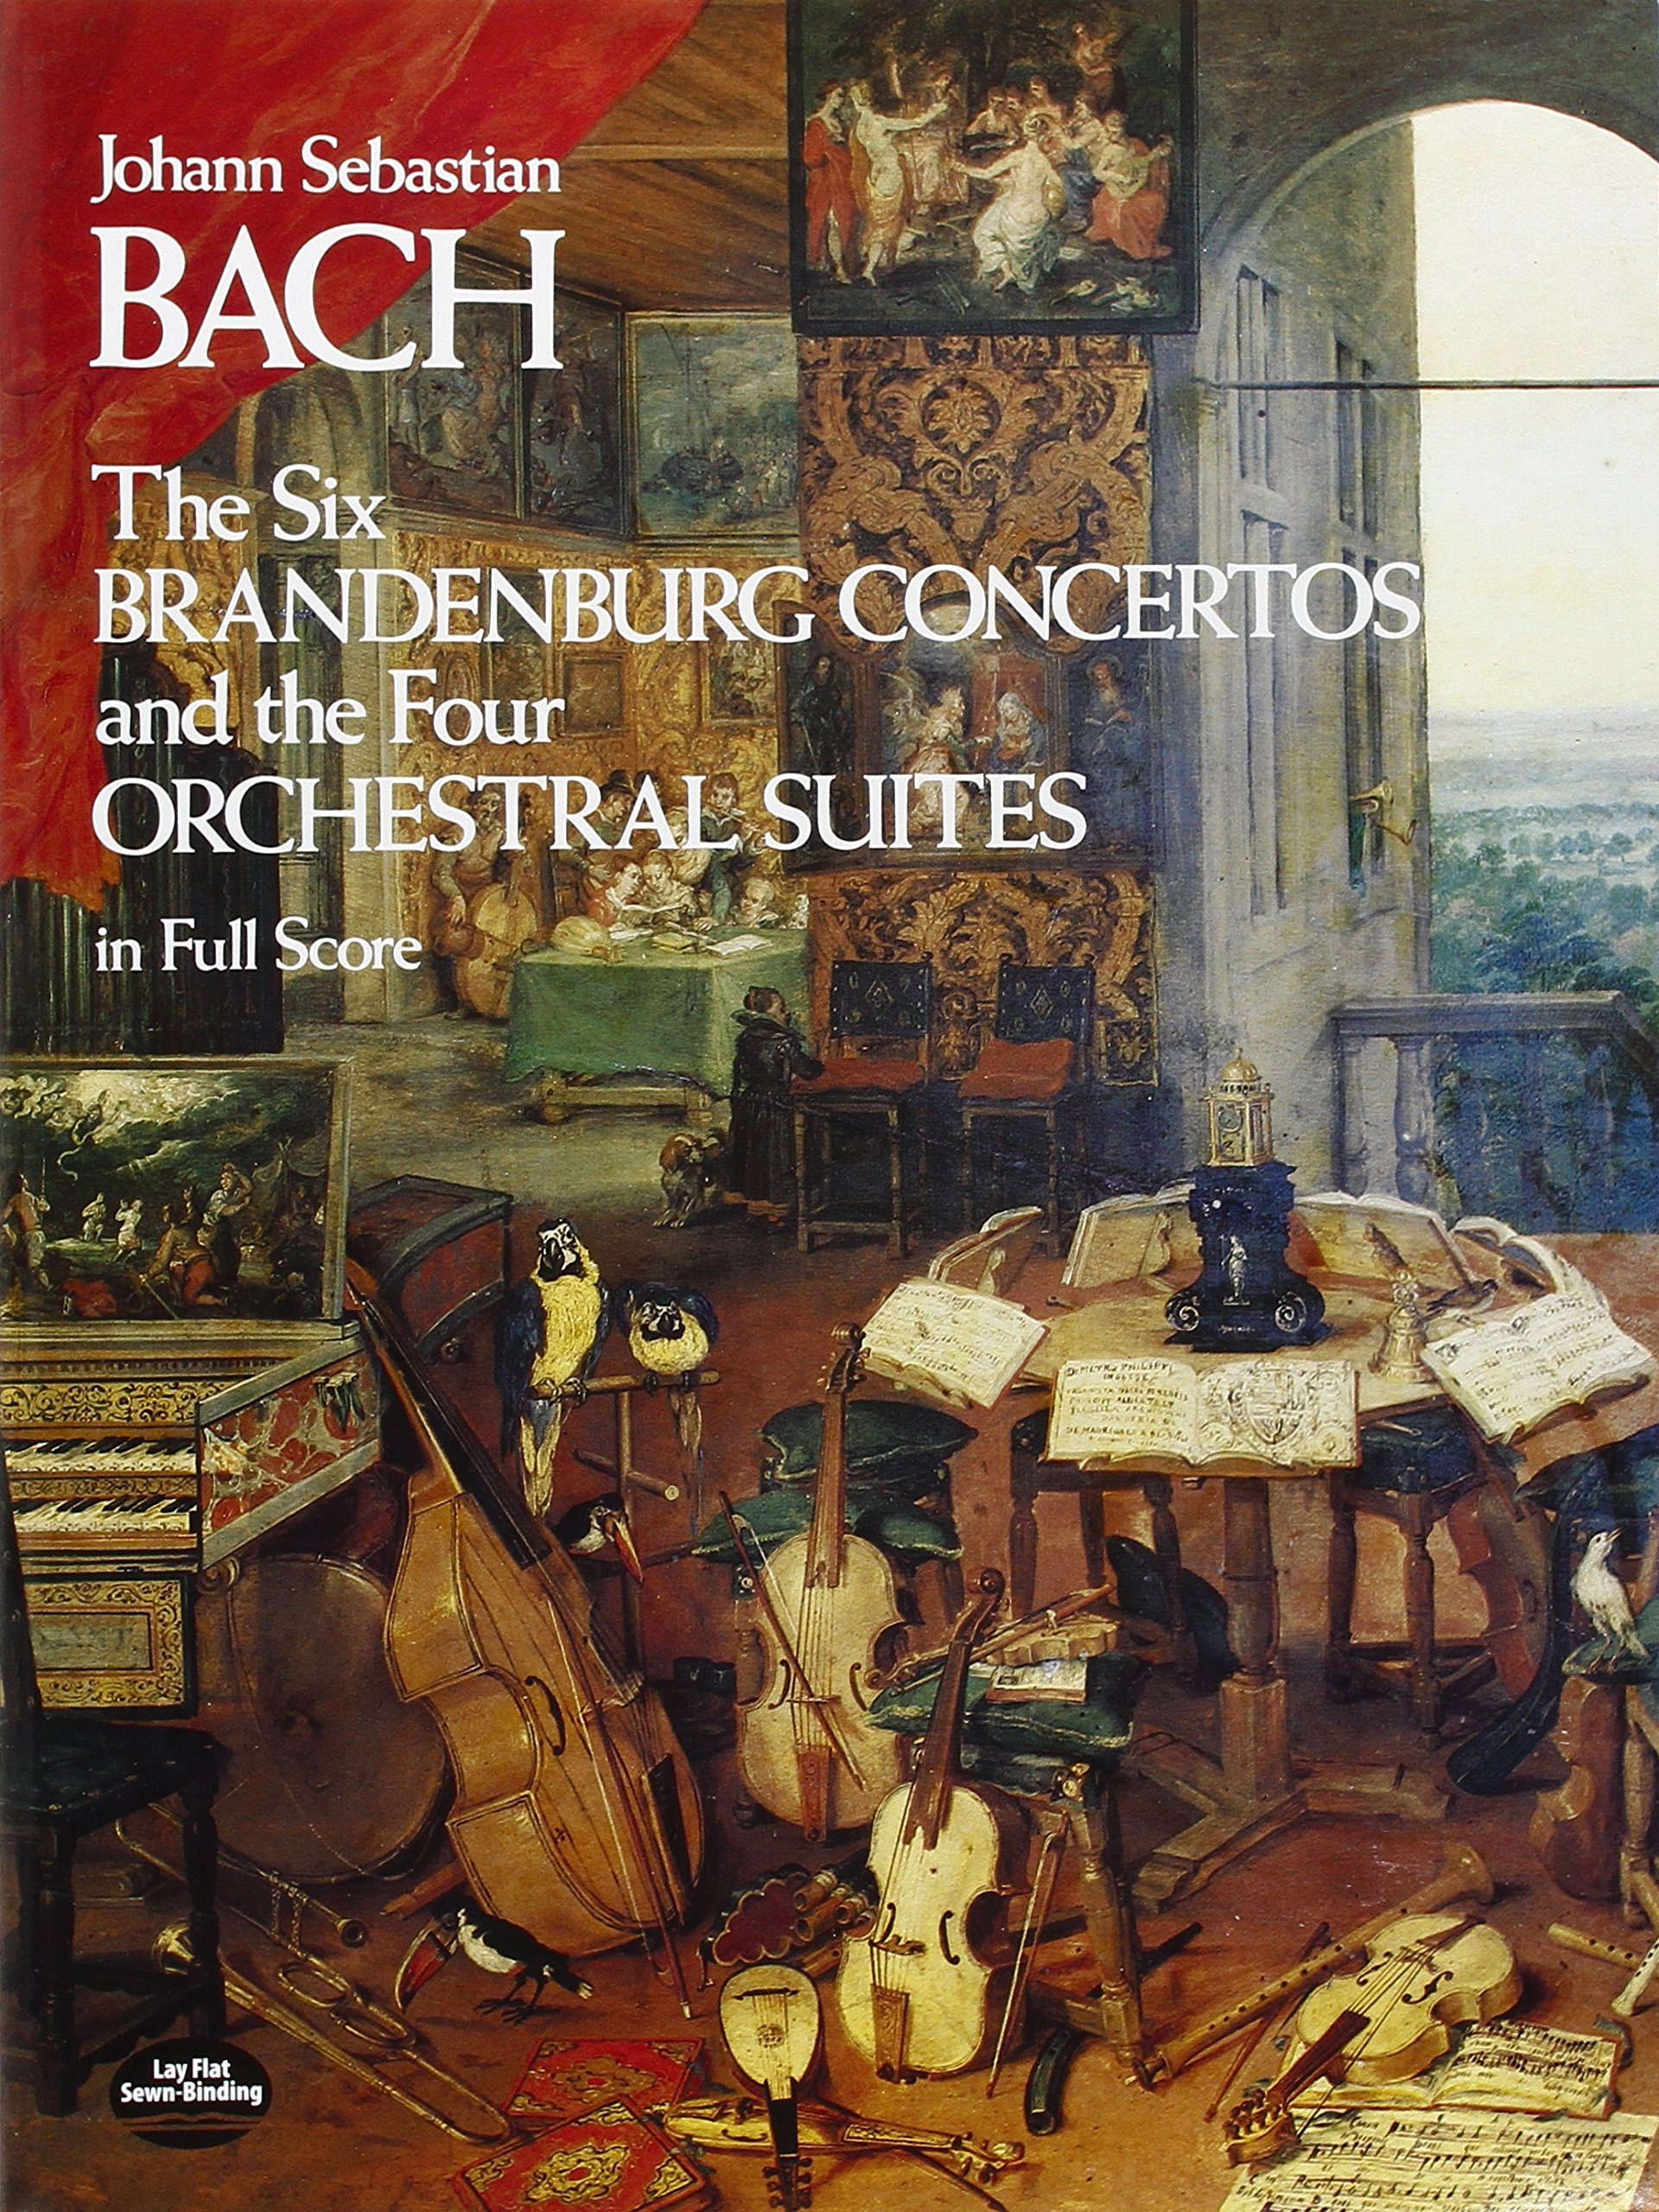 The Six Brandenburg Concertos and the Four Orchestral Suites in Full Score (Dover  Music Scores): Johann Sebastian Bach: 9780486233765: Amazon.com: Books